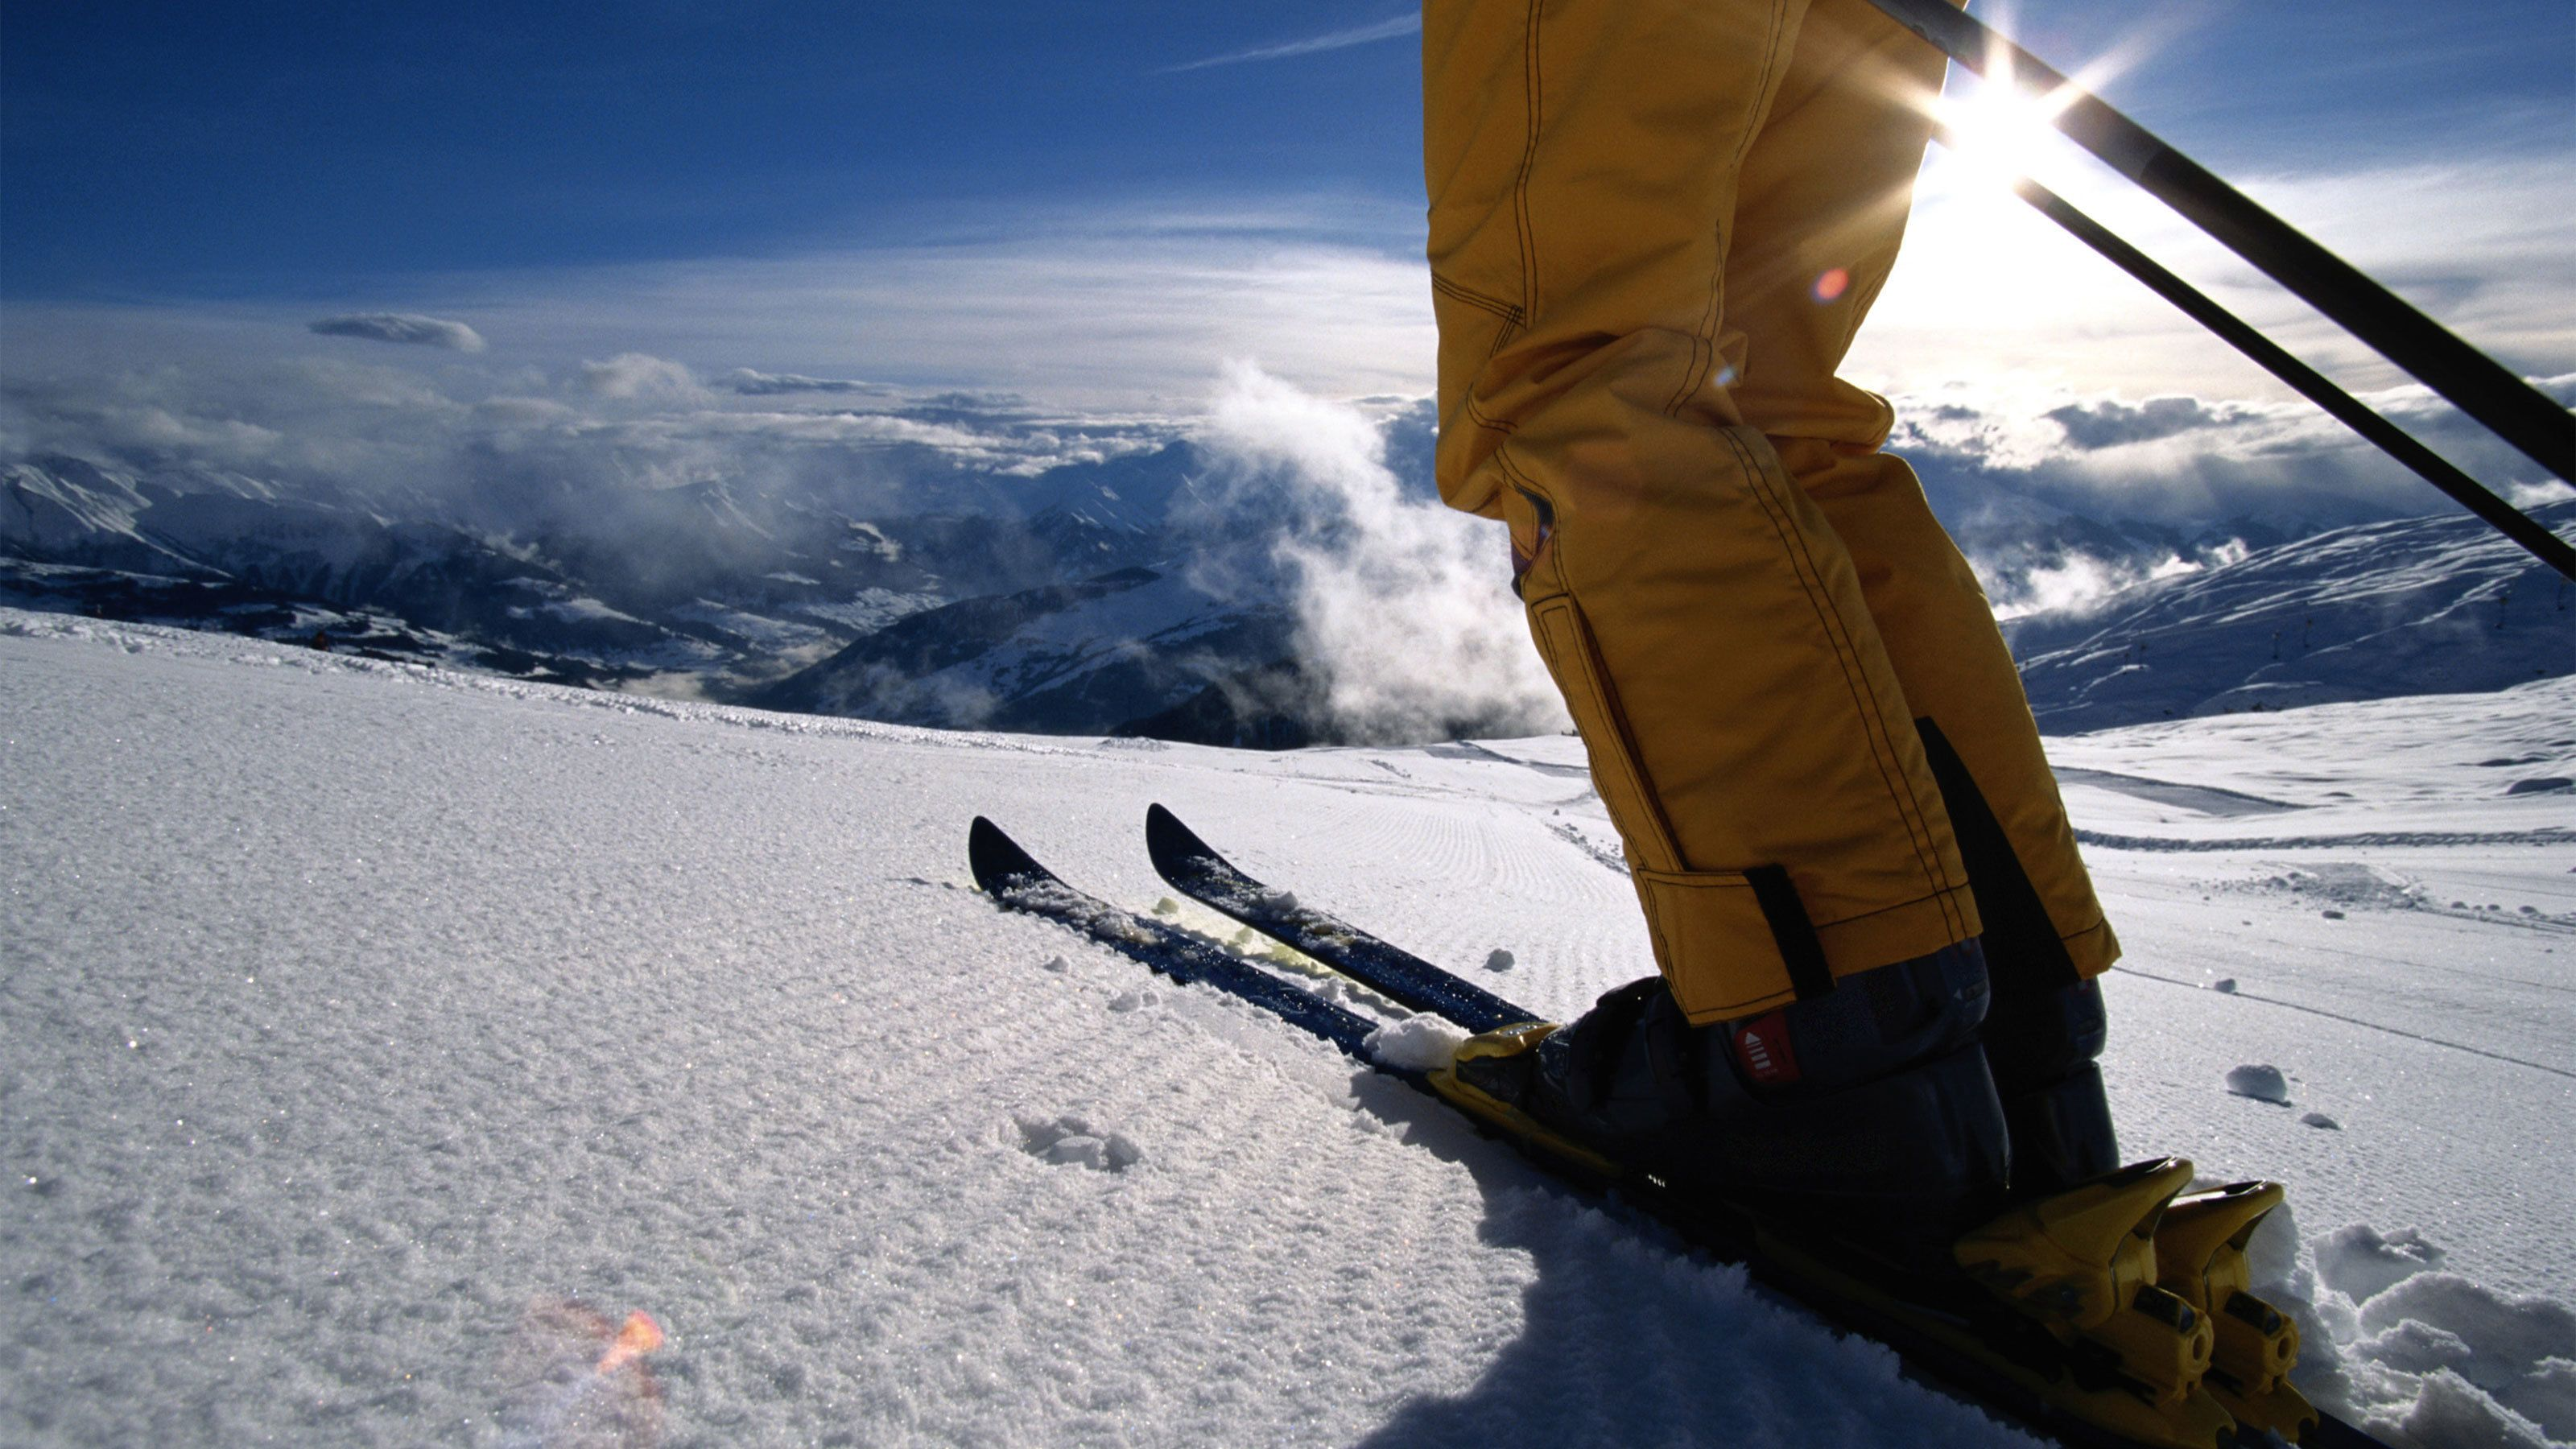 Artistic shot of a skier preparing to traverse the slopes